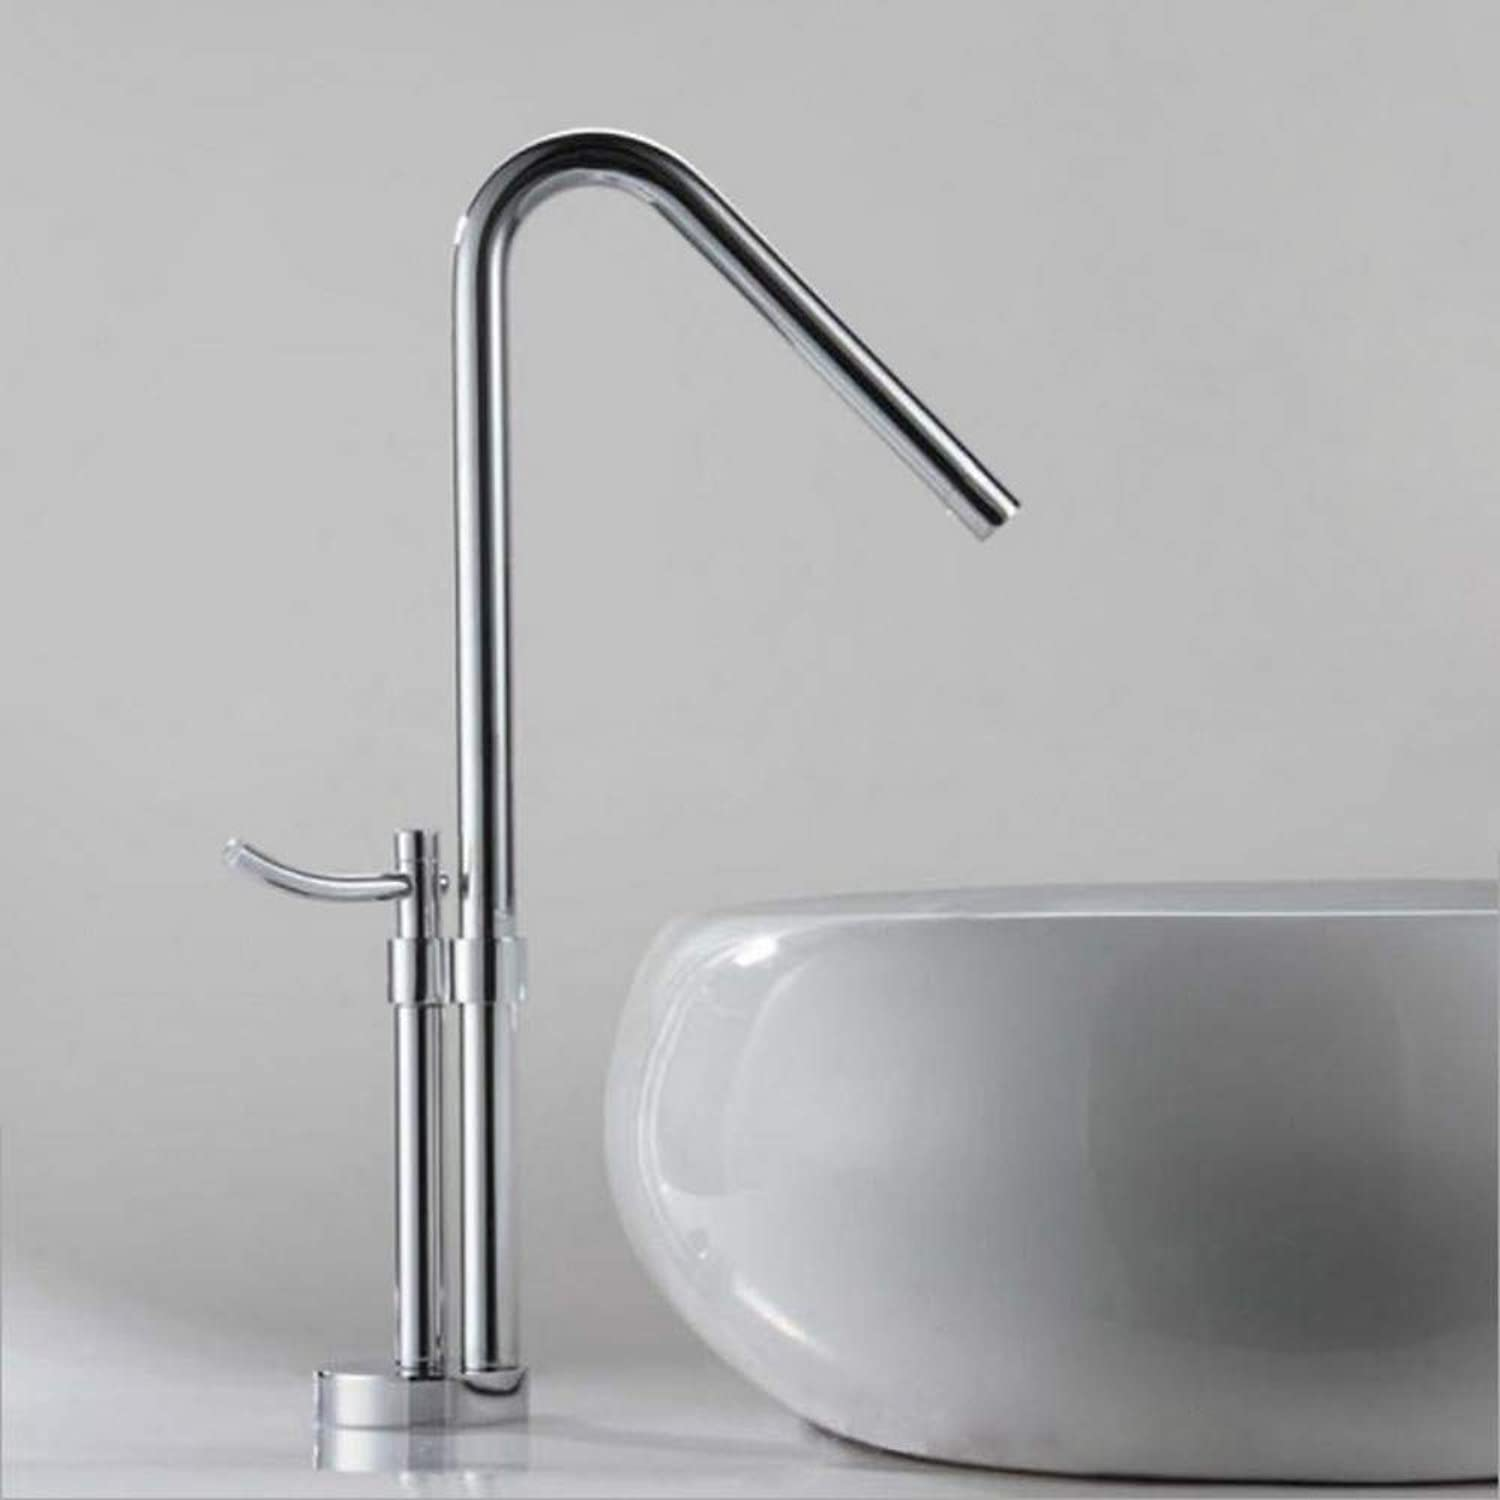 redOOY Brass above counter basin basin hot and cold faucet modern high-end redating kitchen faucet